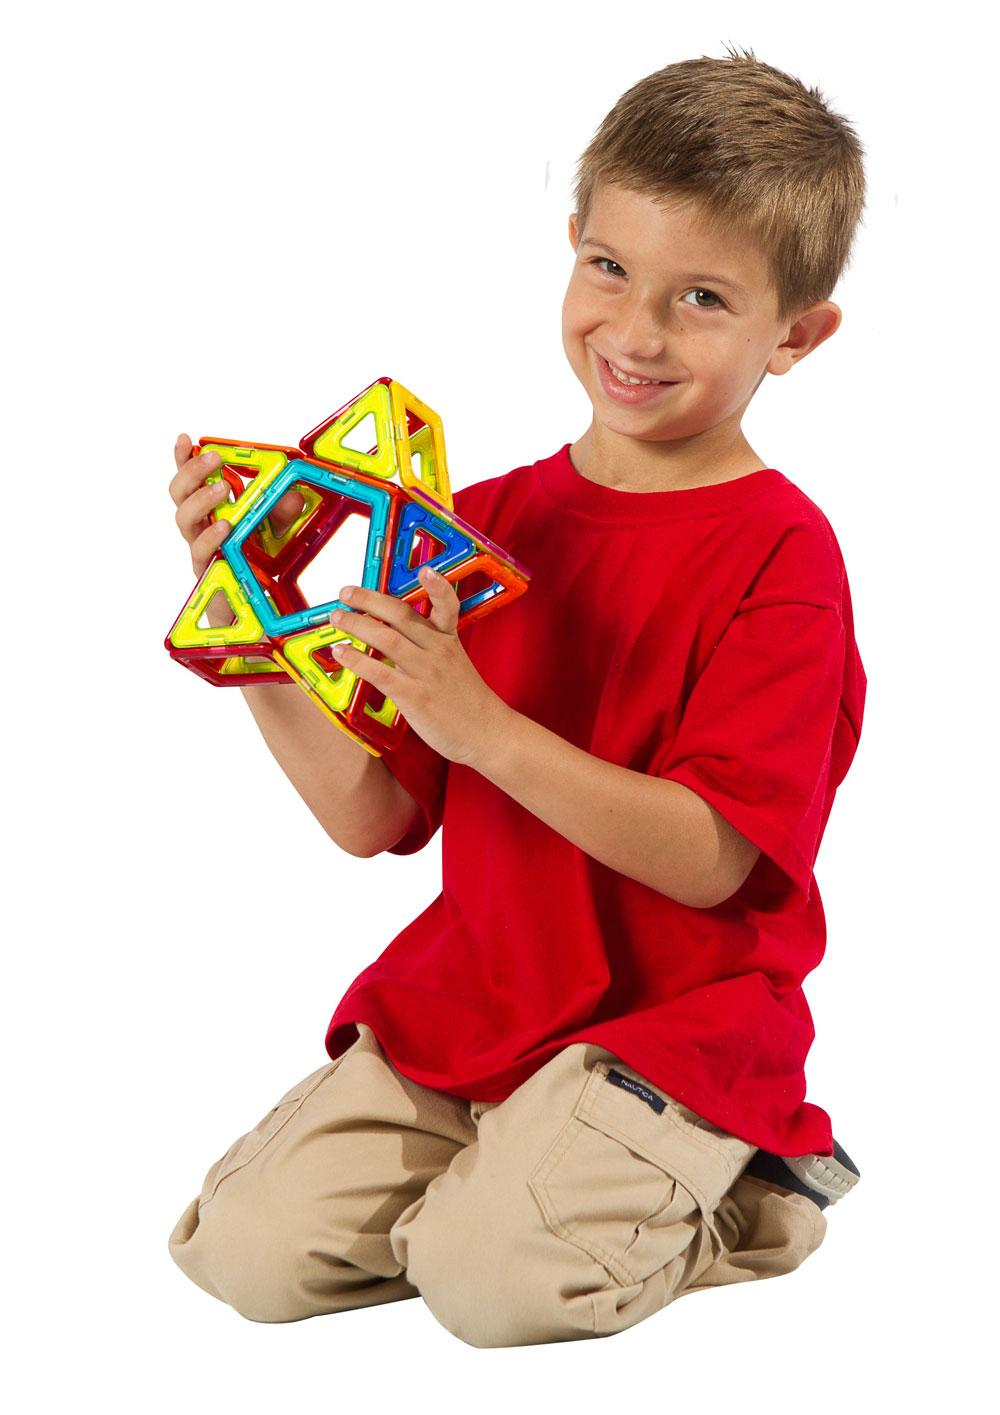 Toys For Kids 8 12 : Amazon magformers basic set pieces magnetic